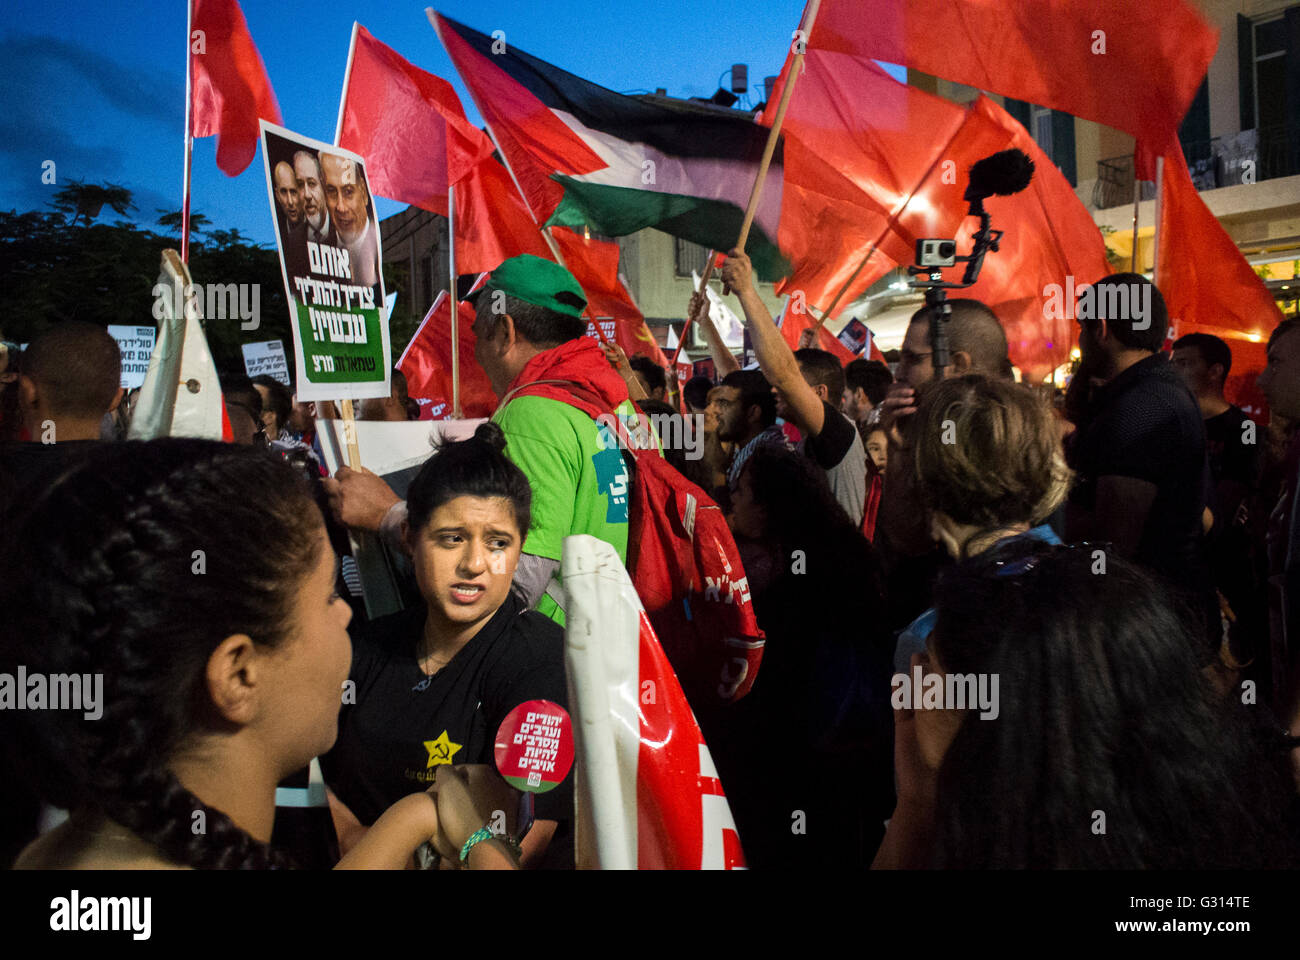 Demonstrations on Allenby Street near Carmel market in Tel Aviv by the United Arab List. - Stock Image